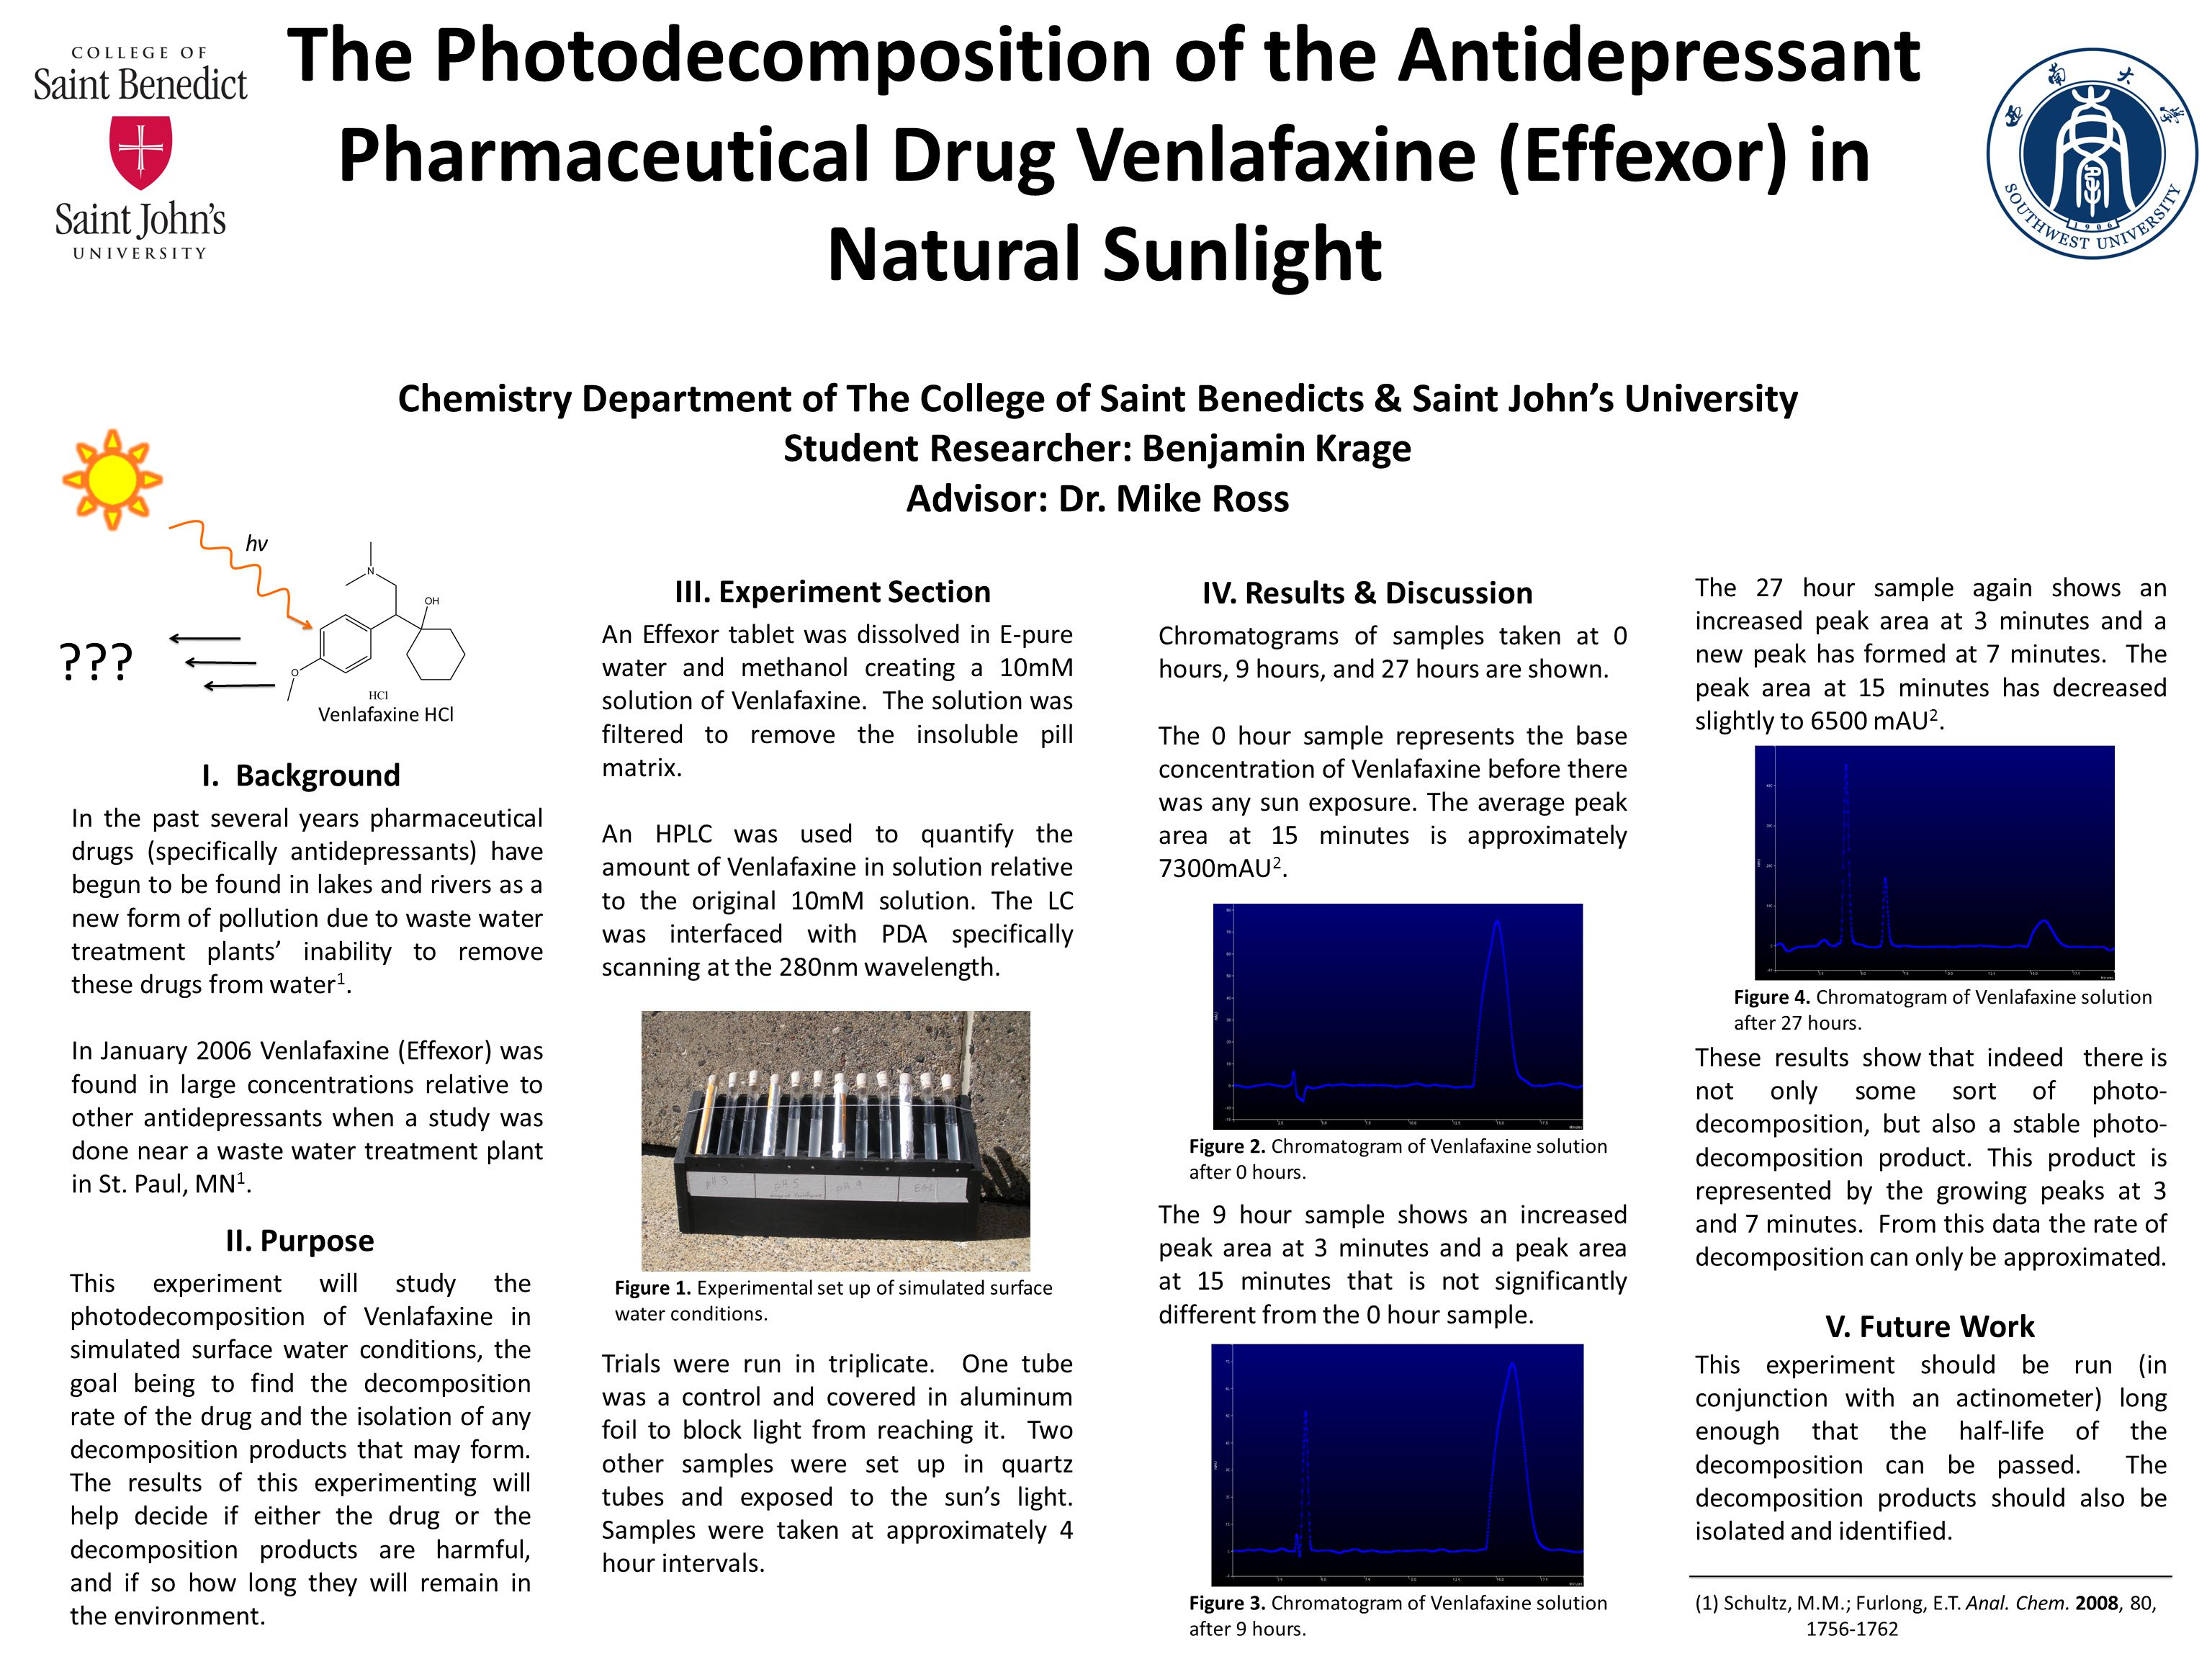 The Photodecomposition of the Antidepressant Pharmaceutical Drug Venlafaxine (Effexor) in Natural Sunlight Chemistry Department of The College of Sain